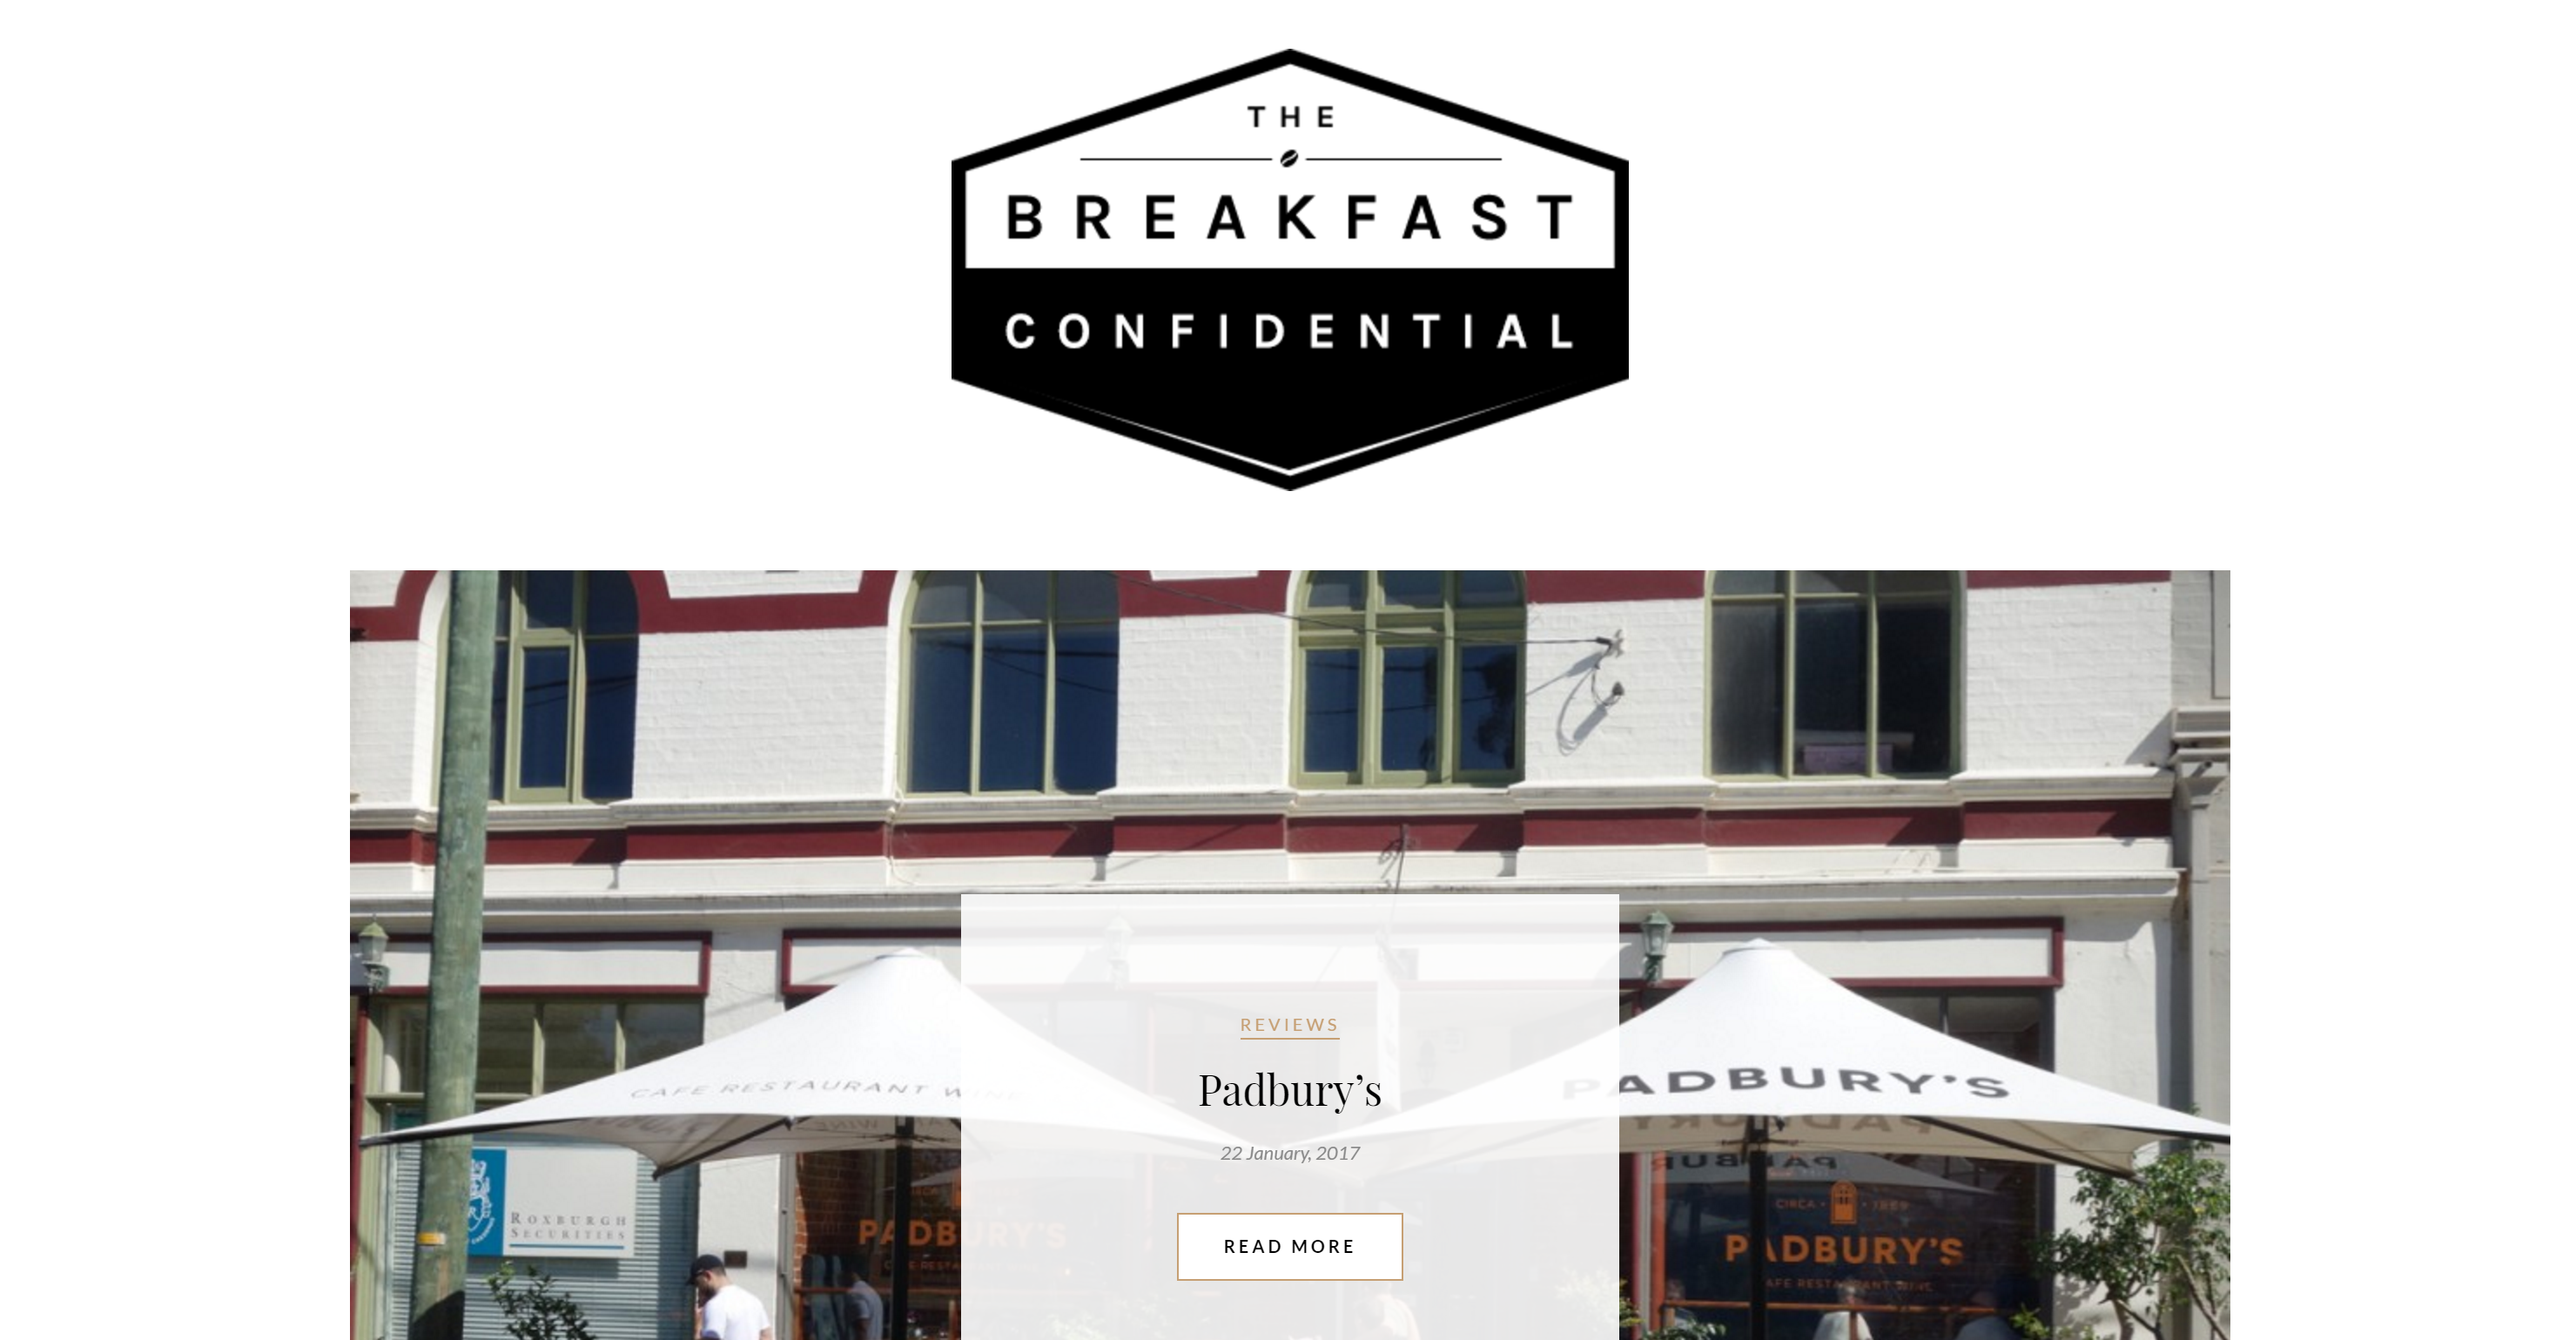 The Breakfast Confidential logo